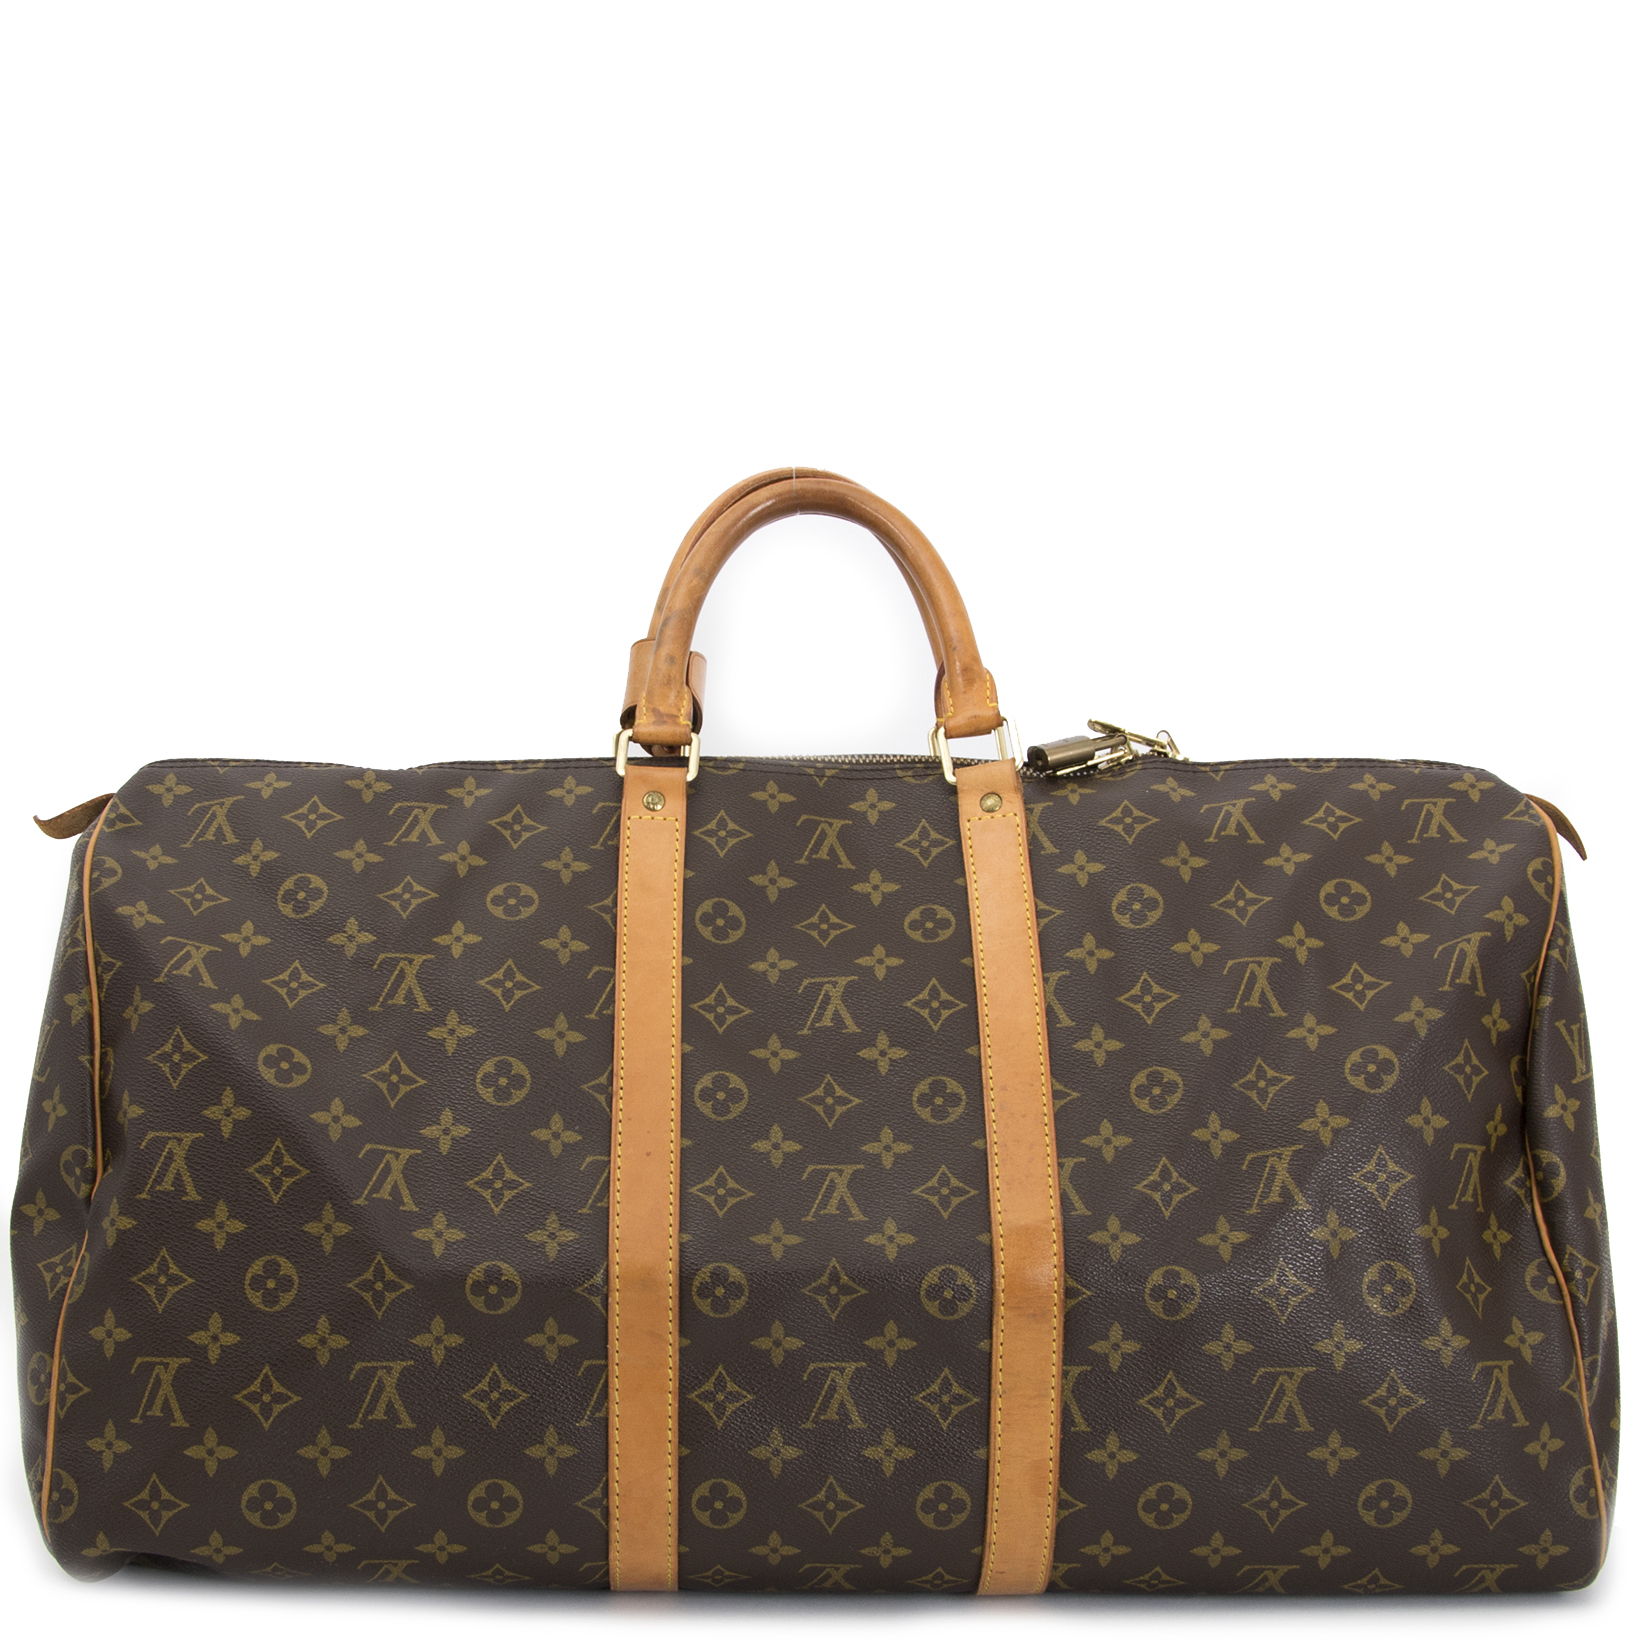 Buy your authentic Louis Vuitton Keepall 50